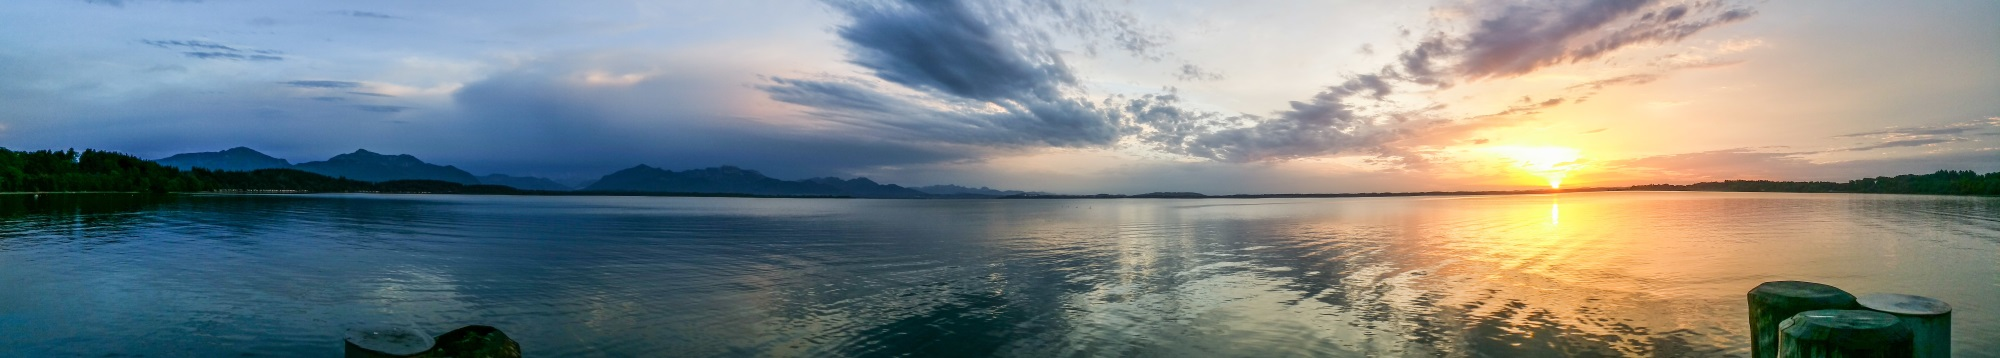 Chiemsee Panorama